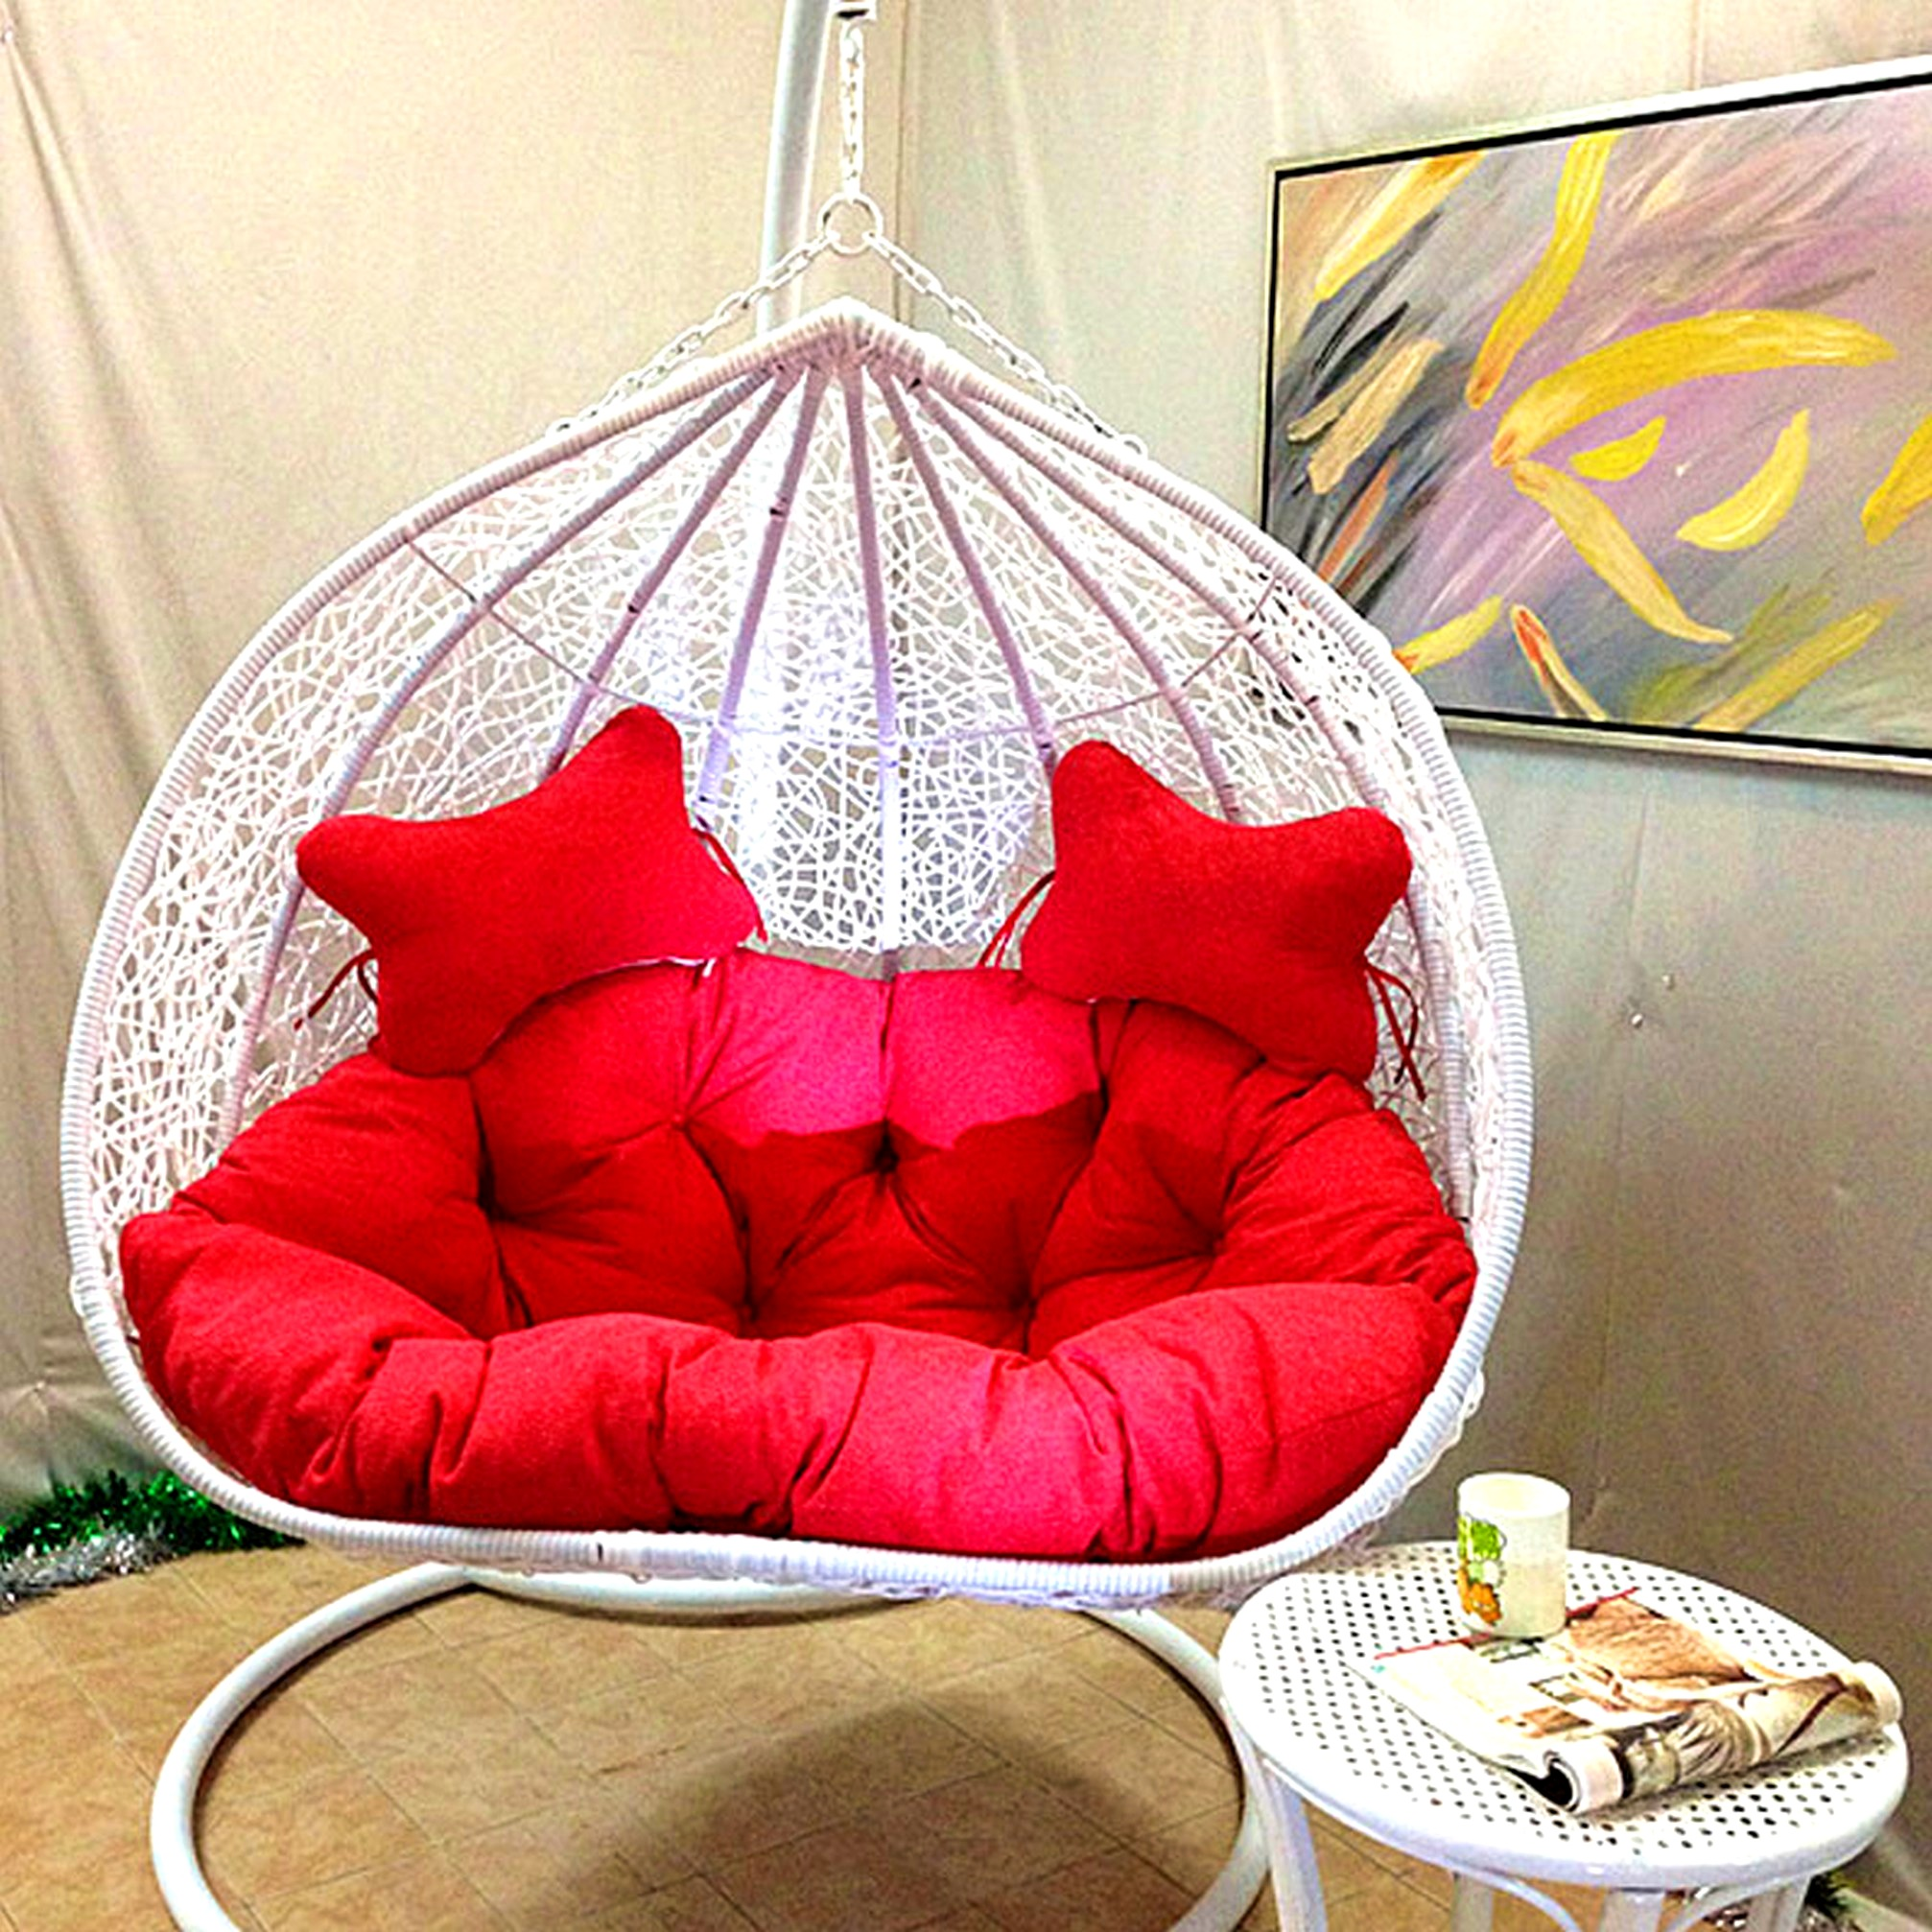 Swing Chair for Bedroom Options to Pick | Resolve40.com